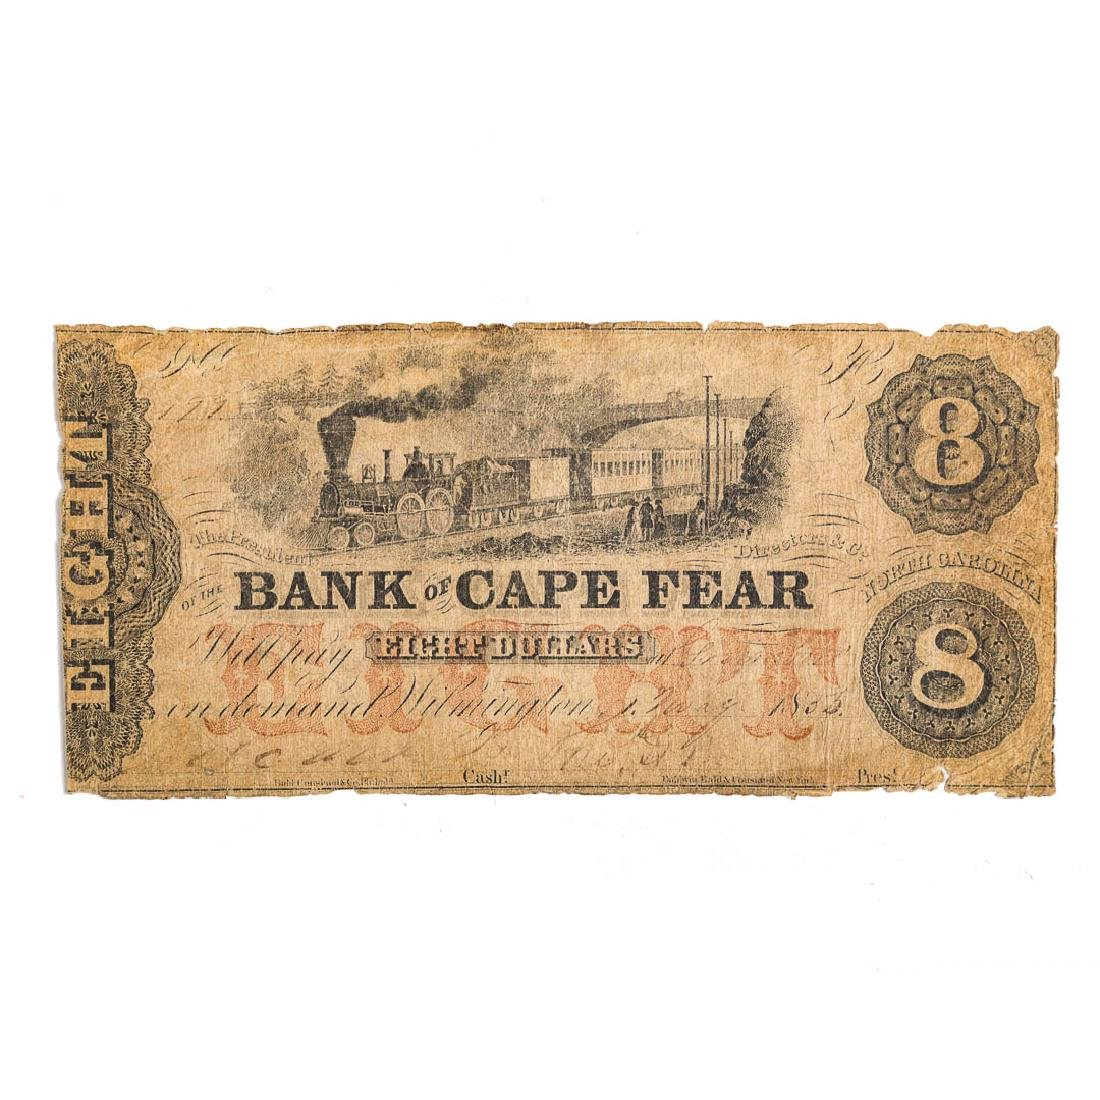 [US] $8 Bank of Cape Fear 2 May, 1855